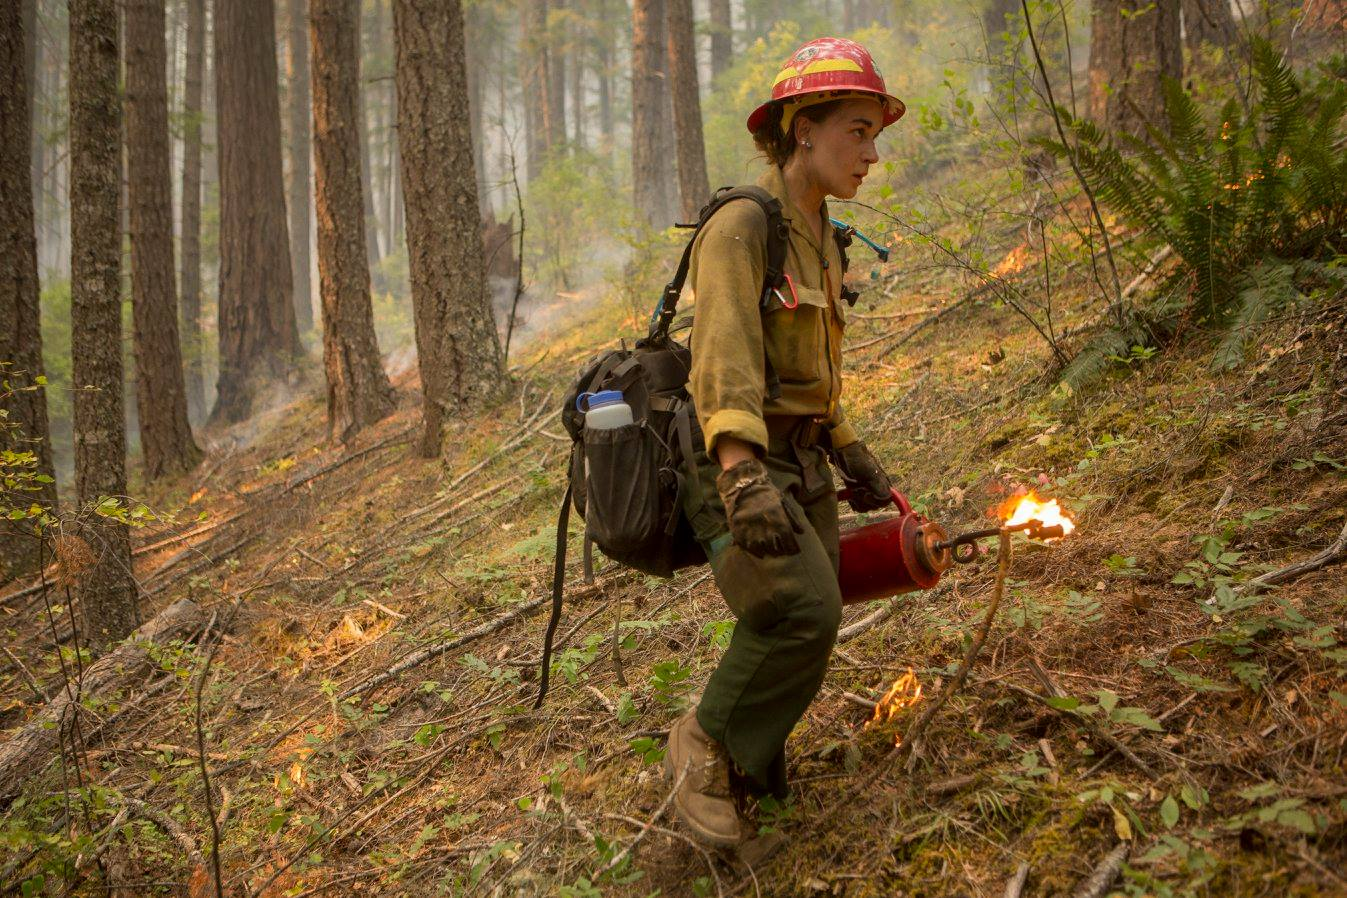 Umpqua North Complex low and slow burn operation with Vale Hotshots, Umpqua NF Eng-65 and holding resources made up of various engines and Imperial Forestry Crew on Friday, Sept. 1, 2017, in the Umpqua National Forest. (Kari Greer/U.S. Forest Service)